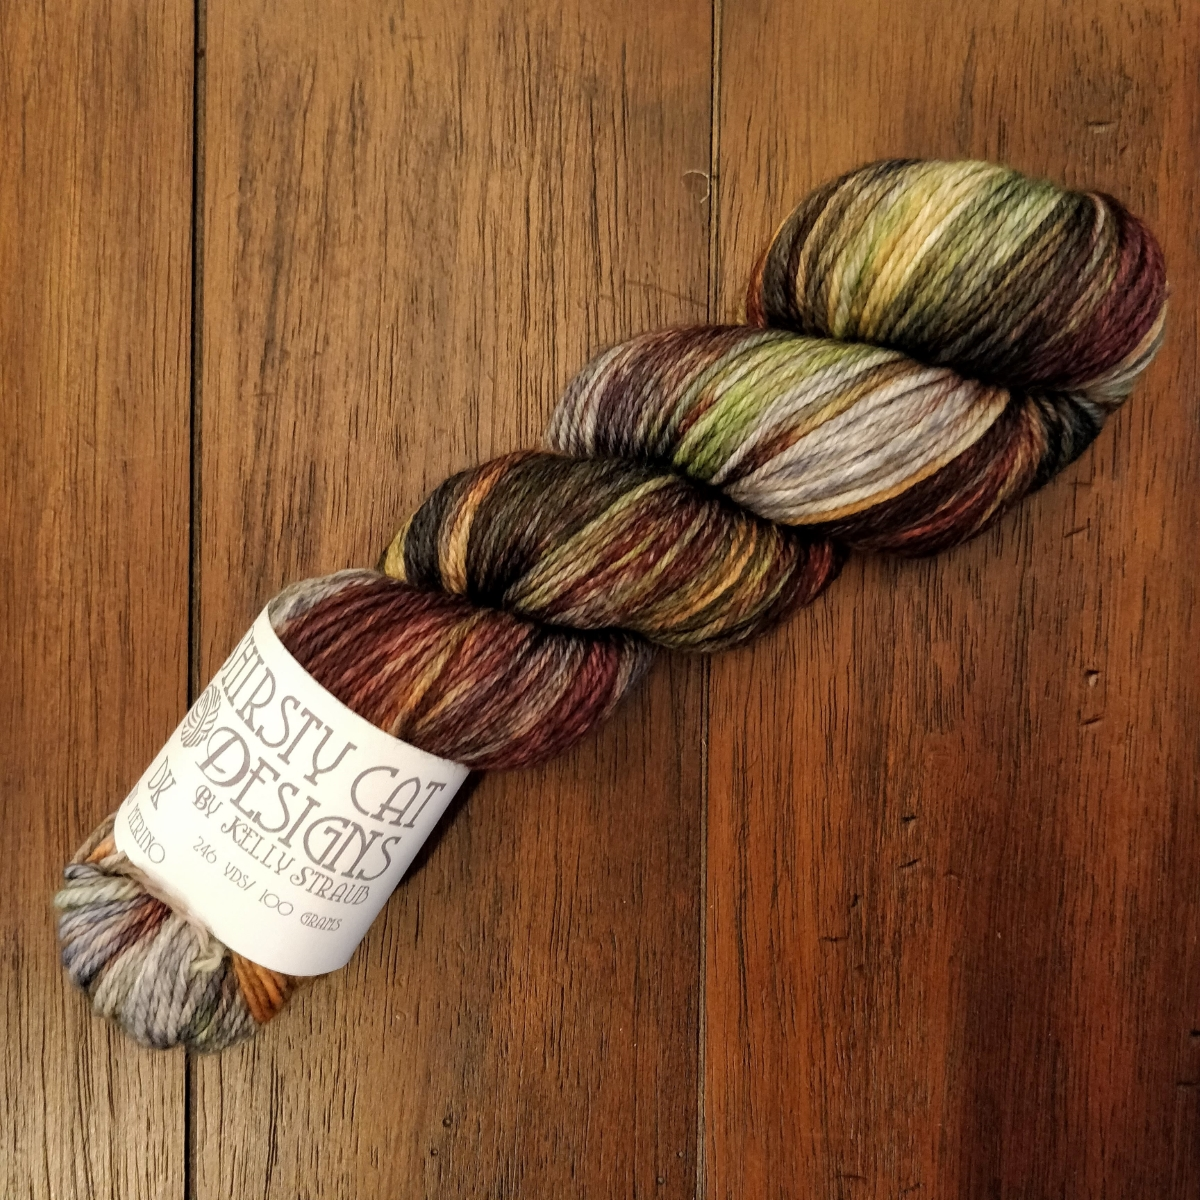 A skein of variegated DK weight yarn.